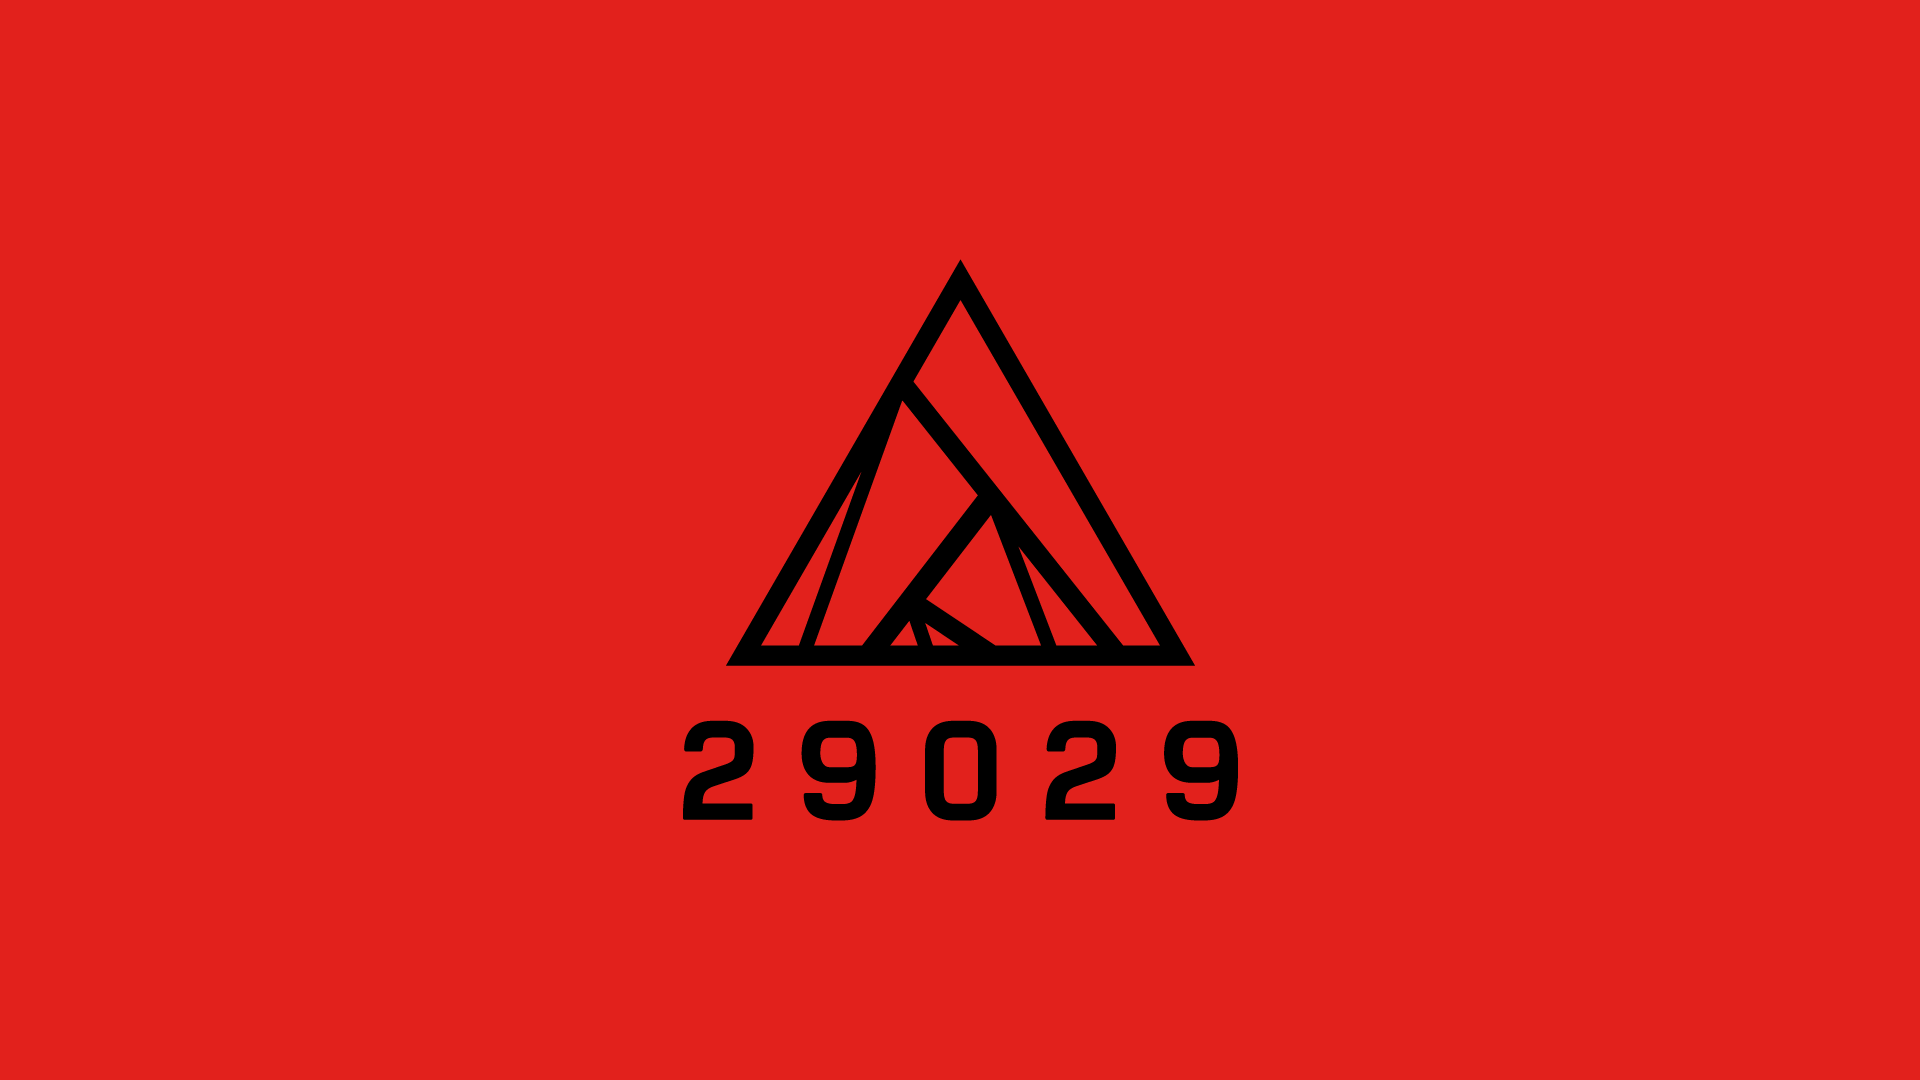 29029_2.png